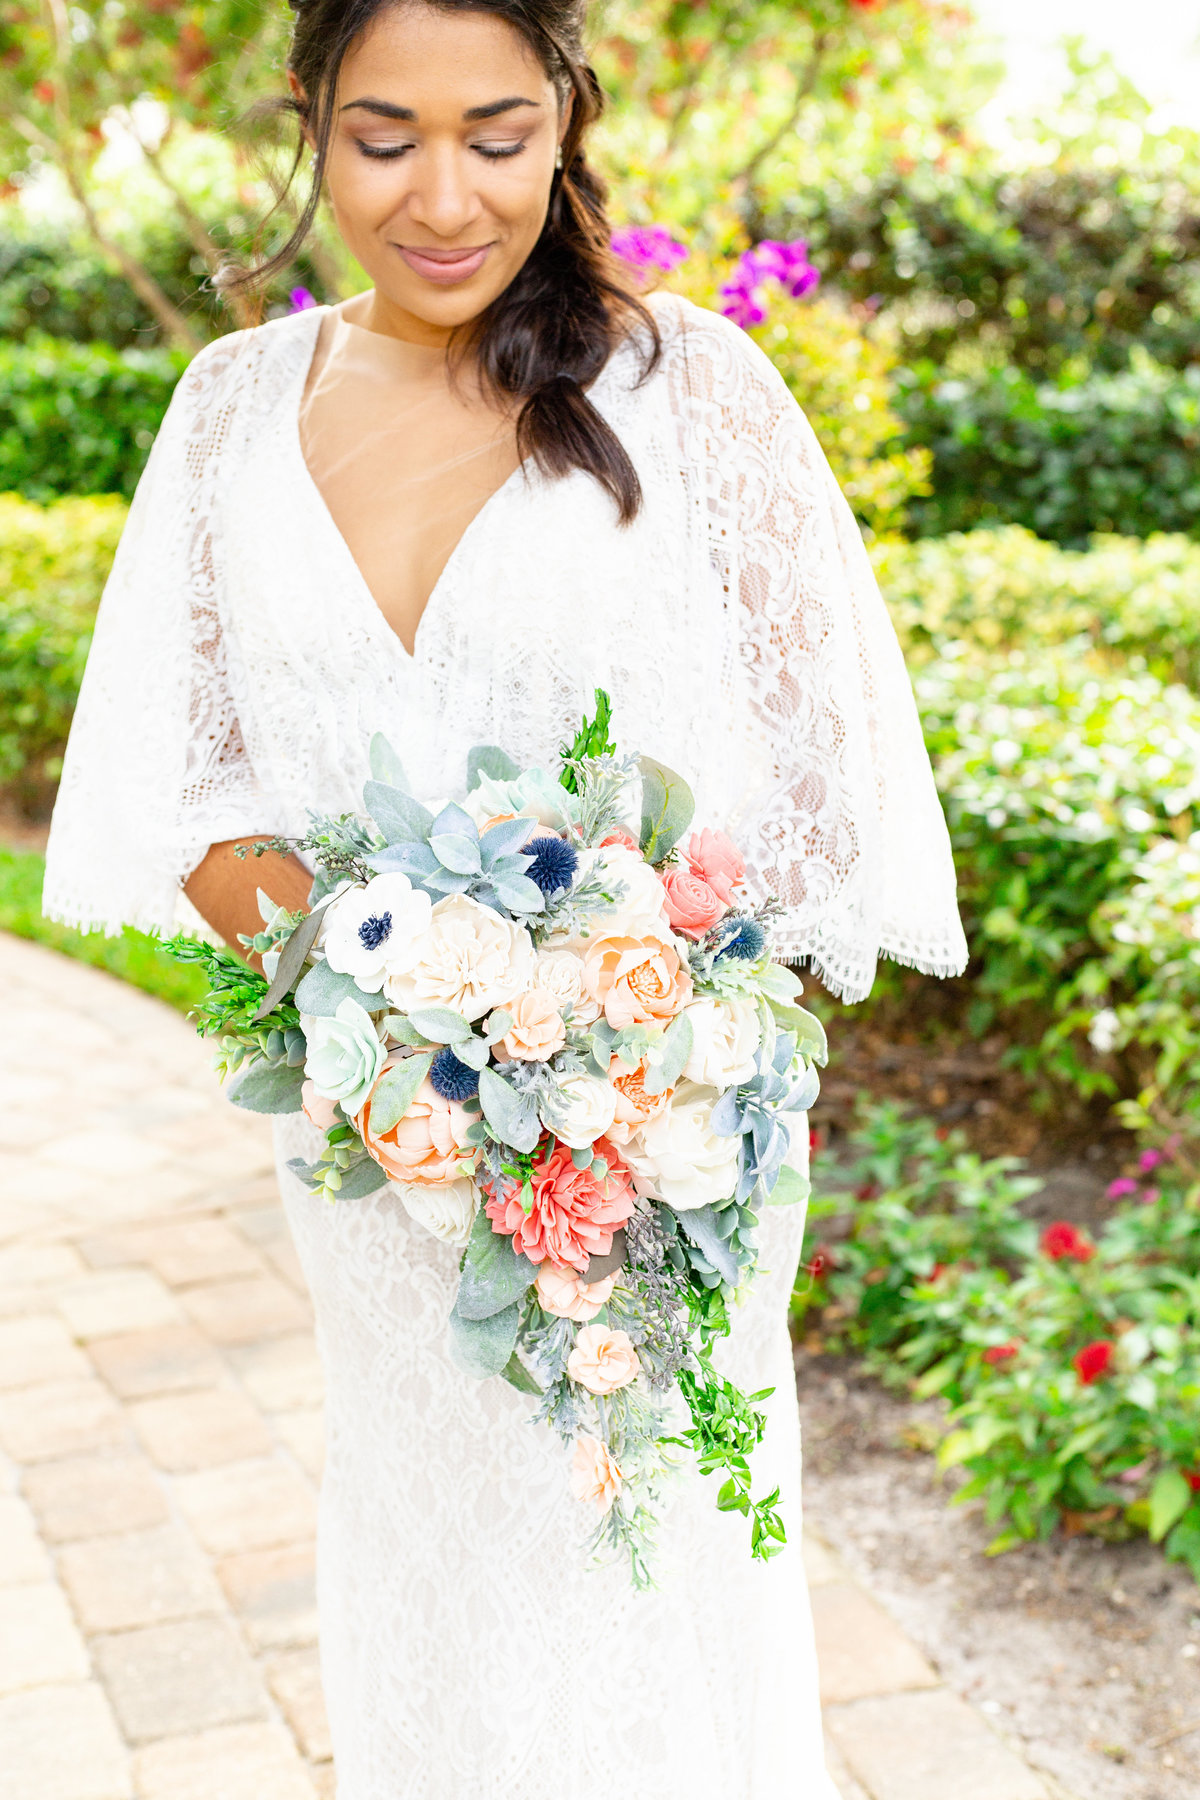 Bride holds cascading bridal bouquet made with bright wooden flowers in Orlando, Florida